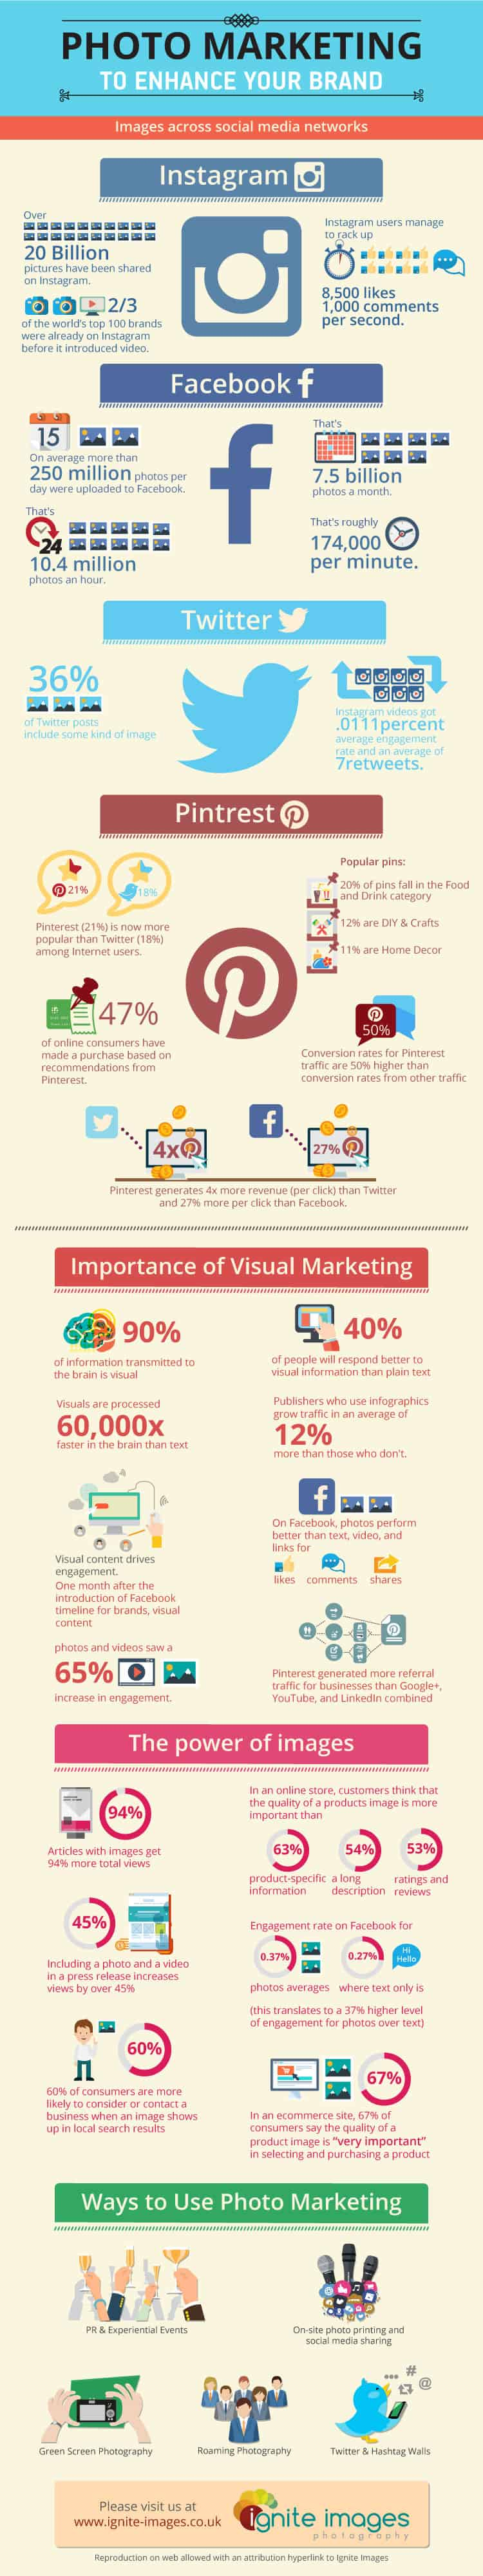 Ignite-Images-Infographic-Photo Marketing